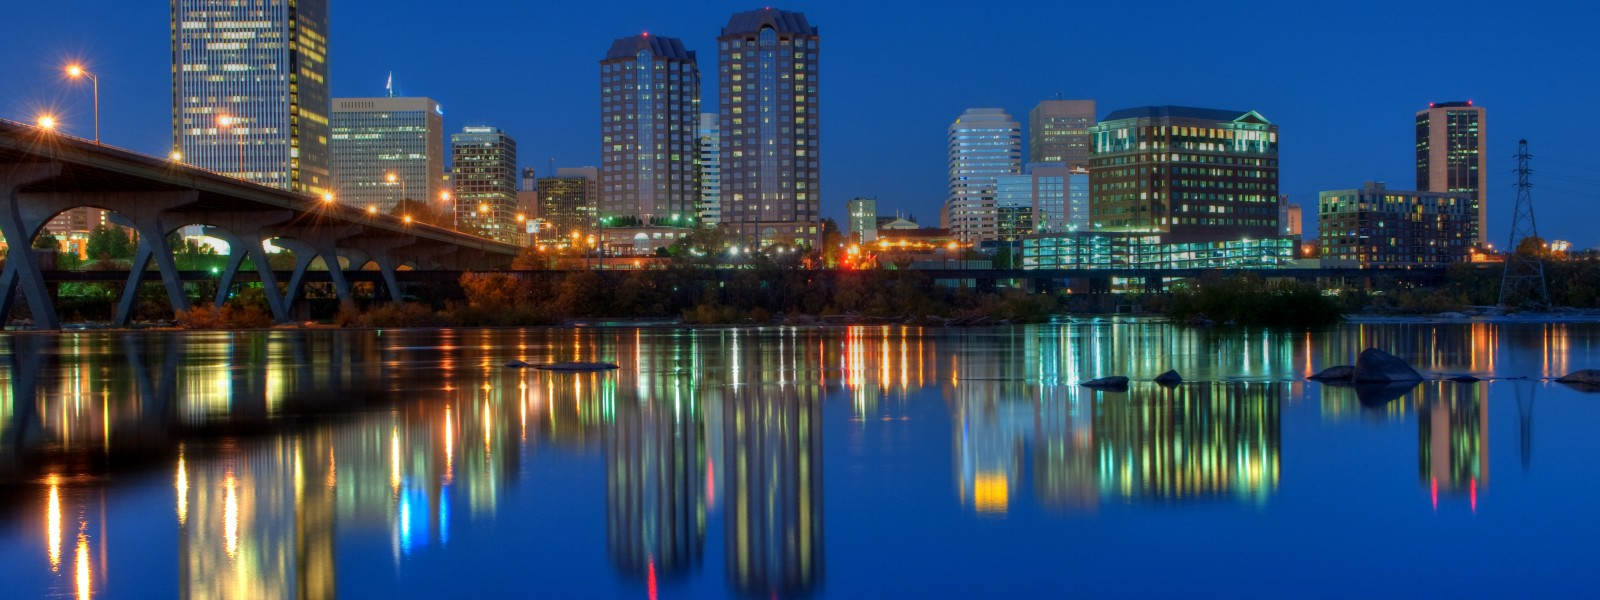 Richmond_VA-1600x600.jpg